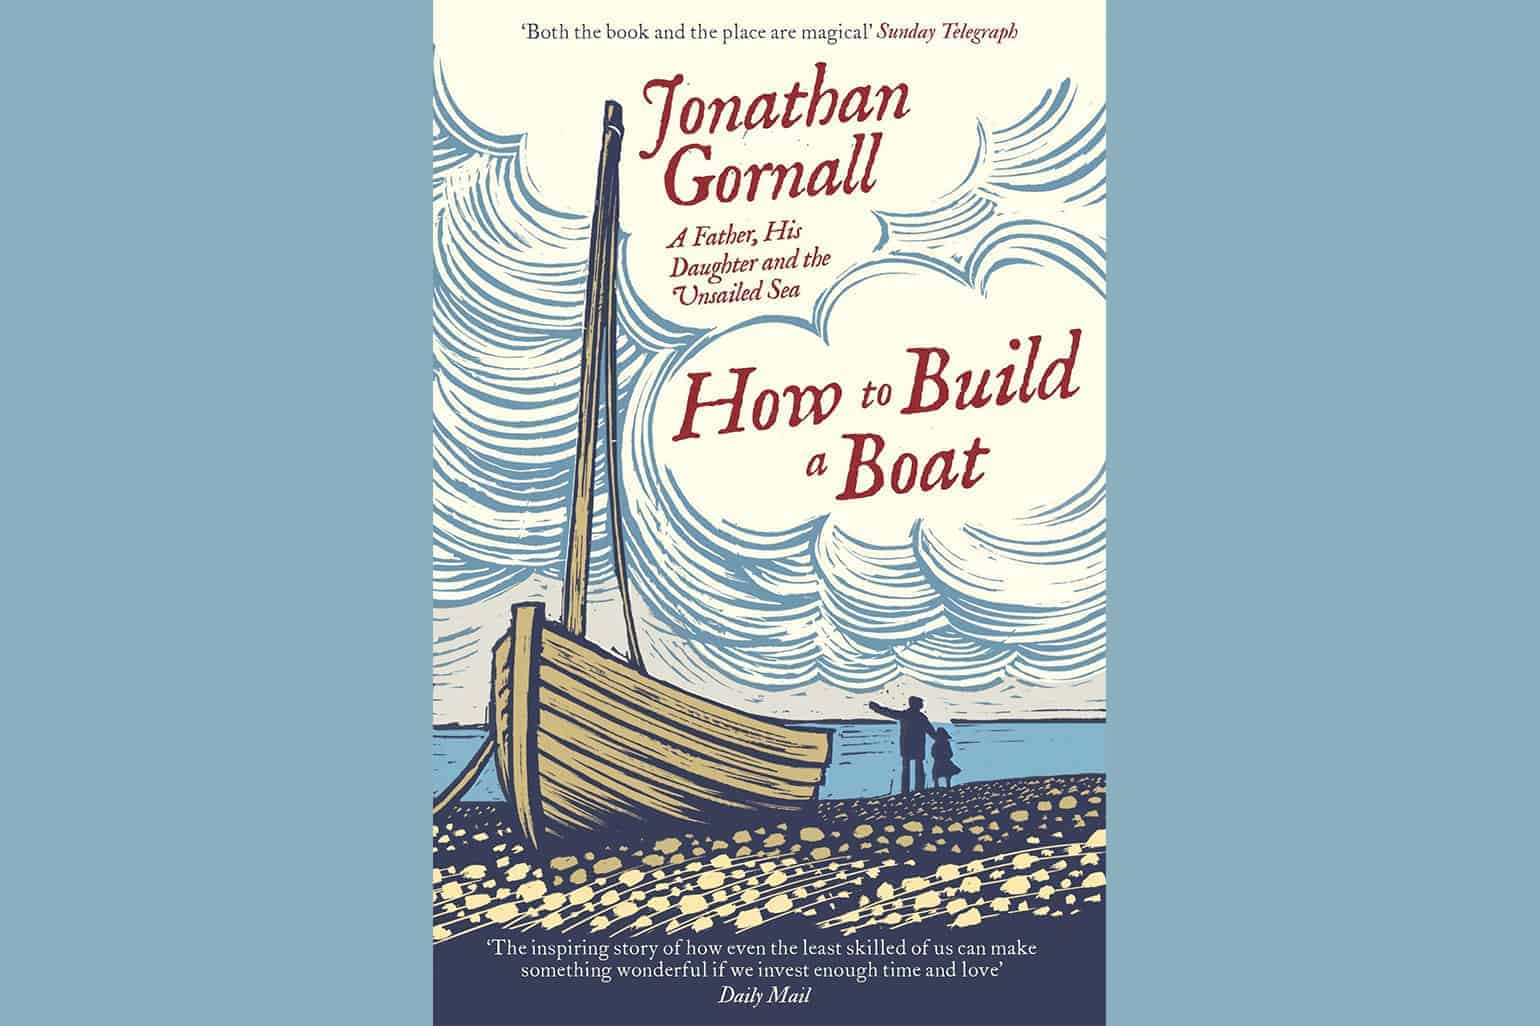 How To Build A Boat A Father His Daughter And The Unsailed Sea By Jonathan Gornall